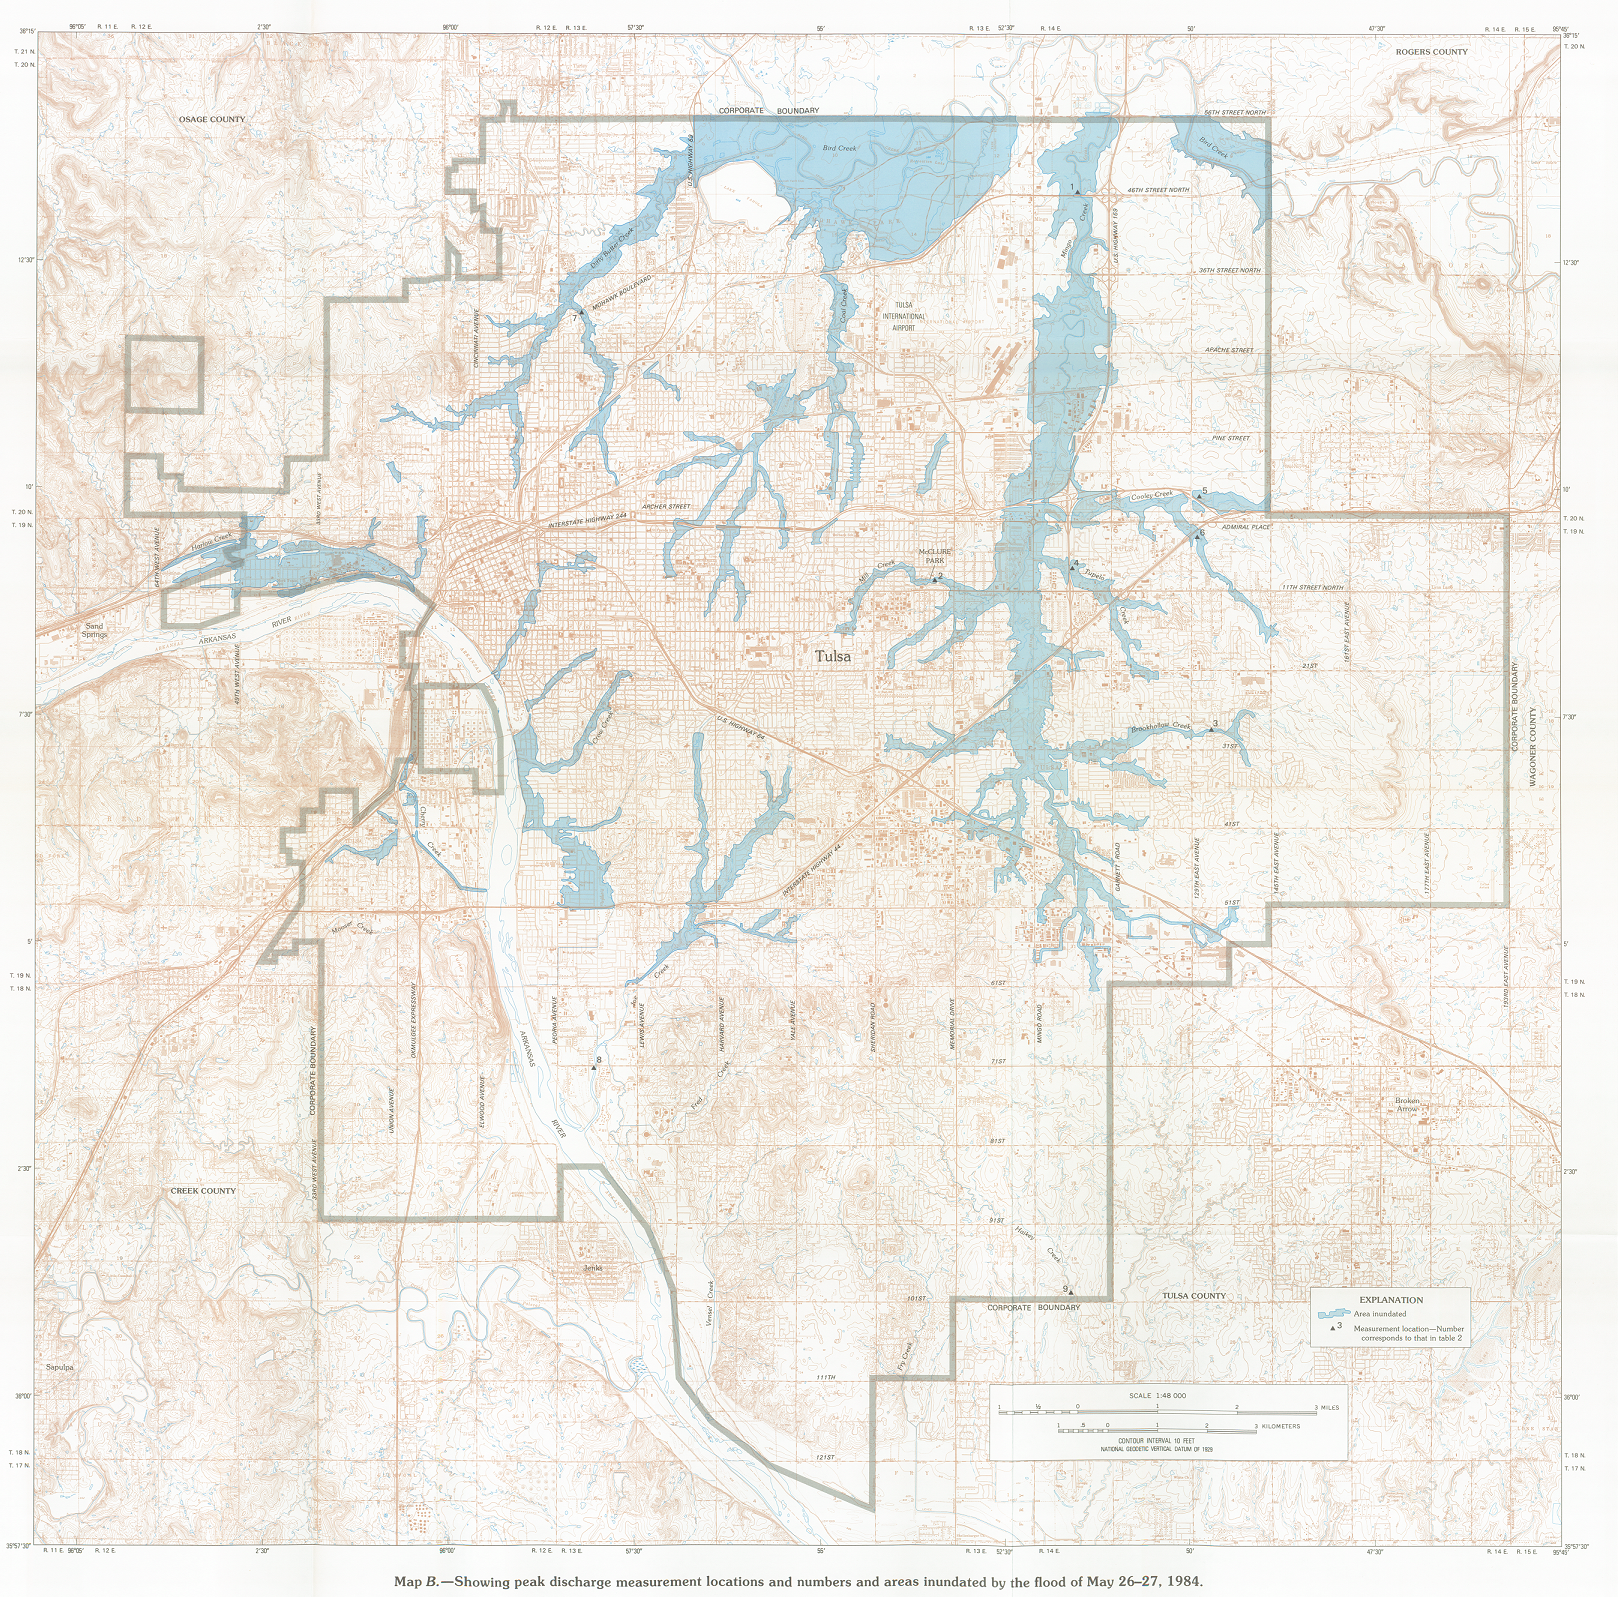 USGS inundation map